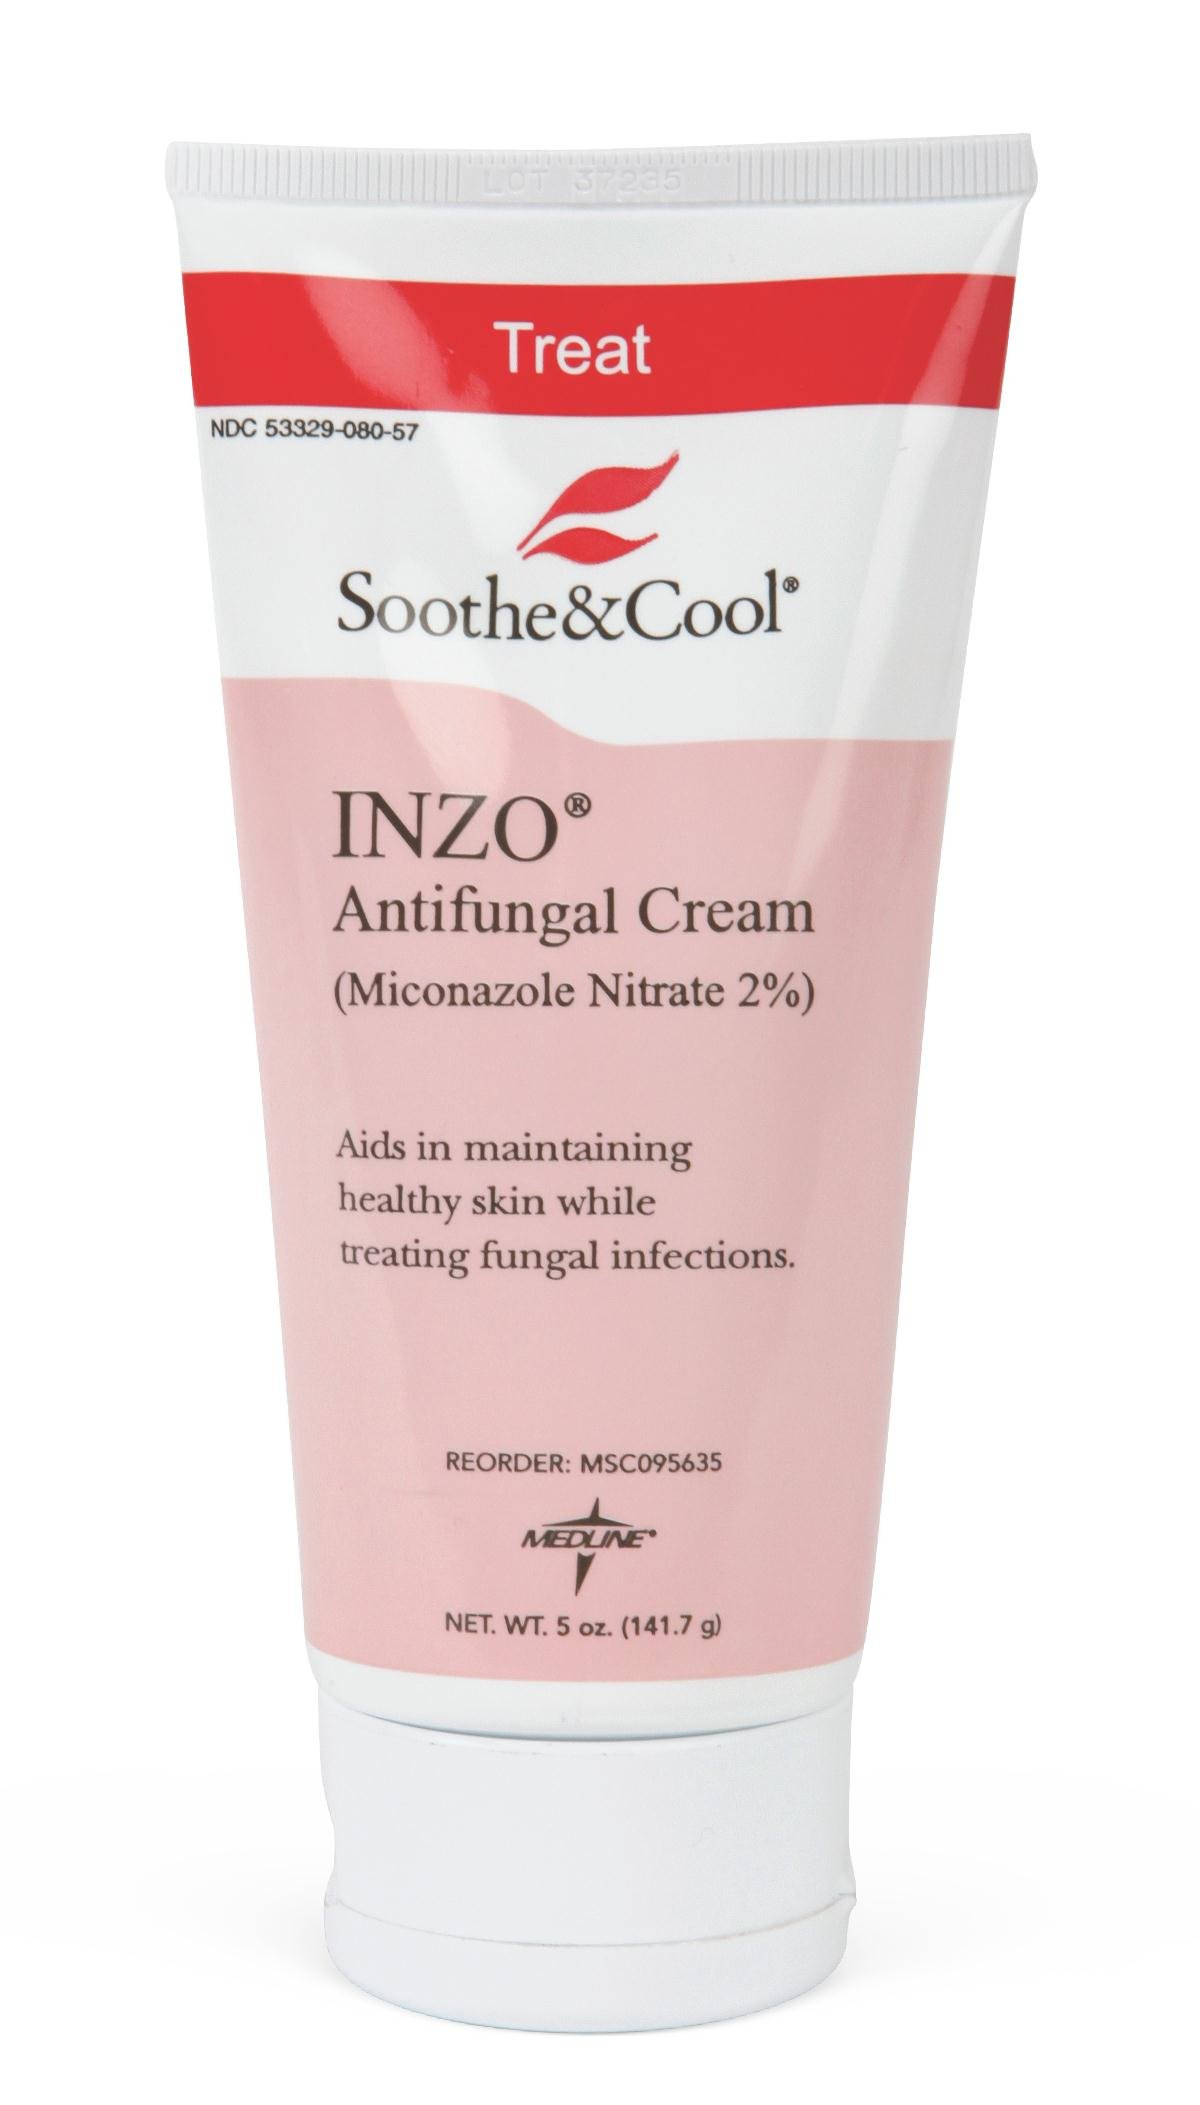 Medline Soothe and Cool Inzo Antifungal Cream, White, 12 Count